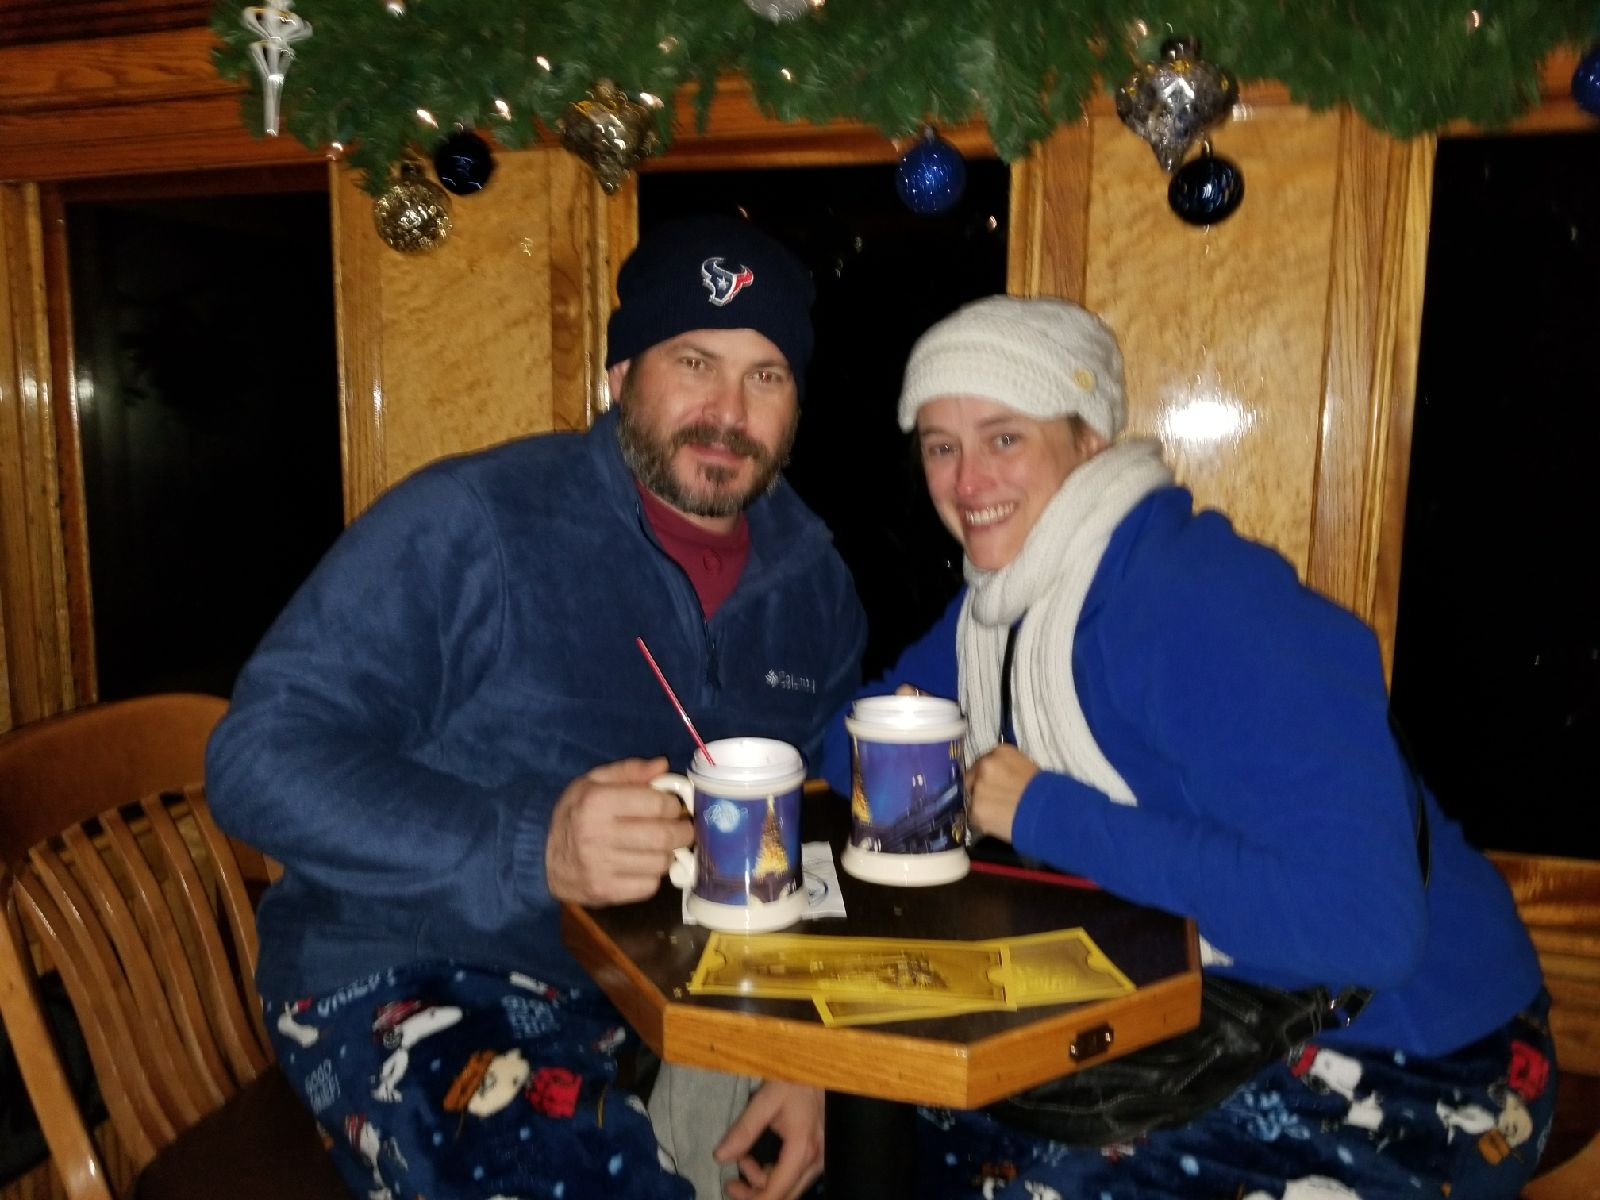 On the Polar Express in Colorado. Hot cocoa and stories by Santa.